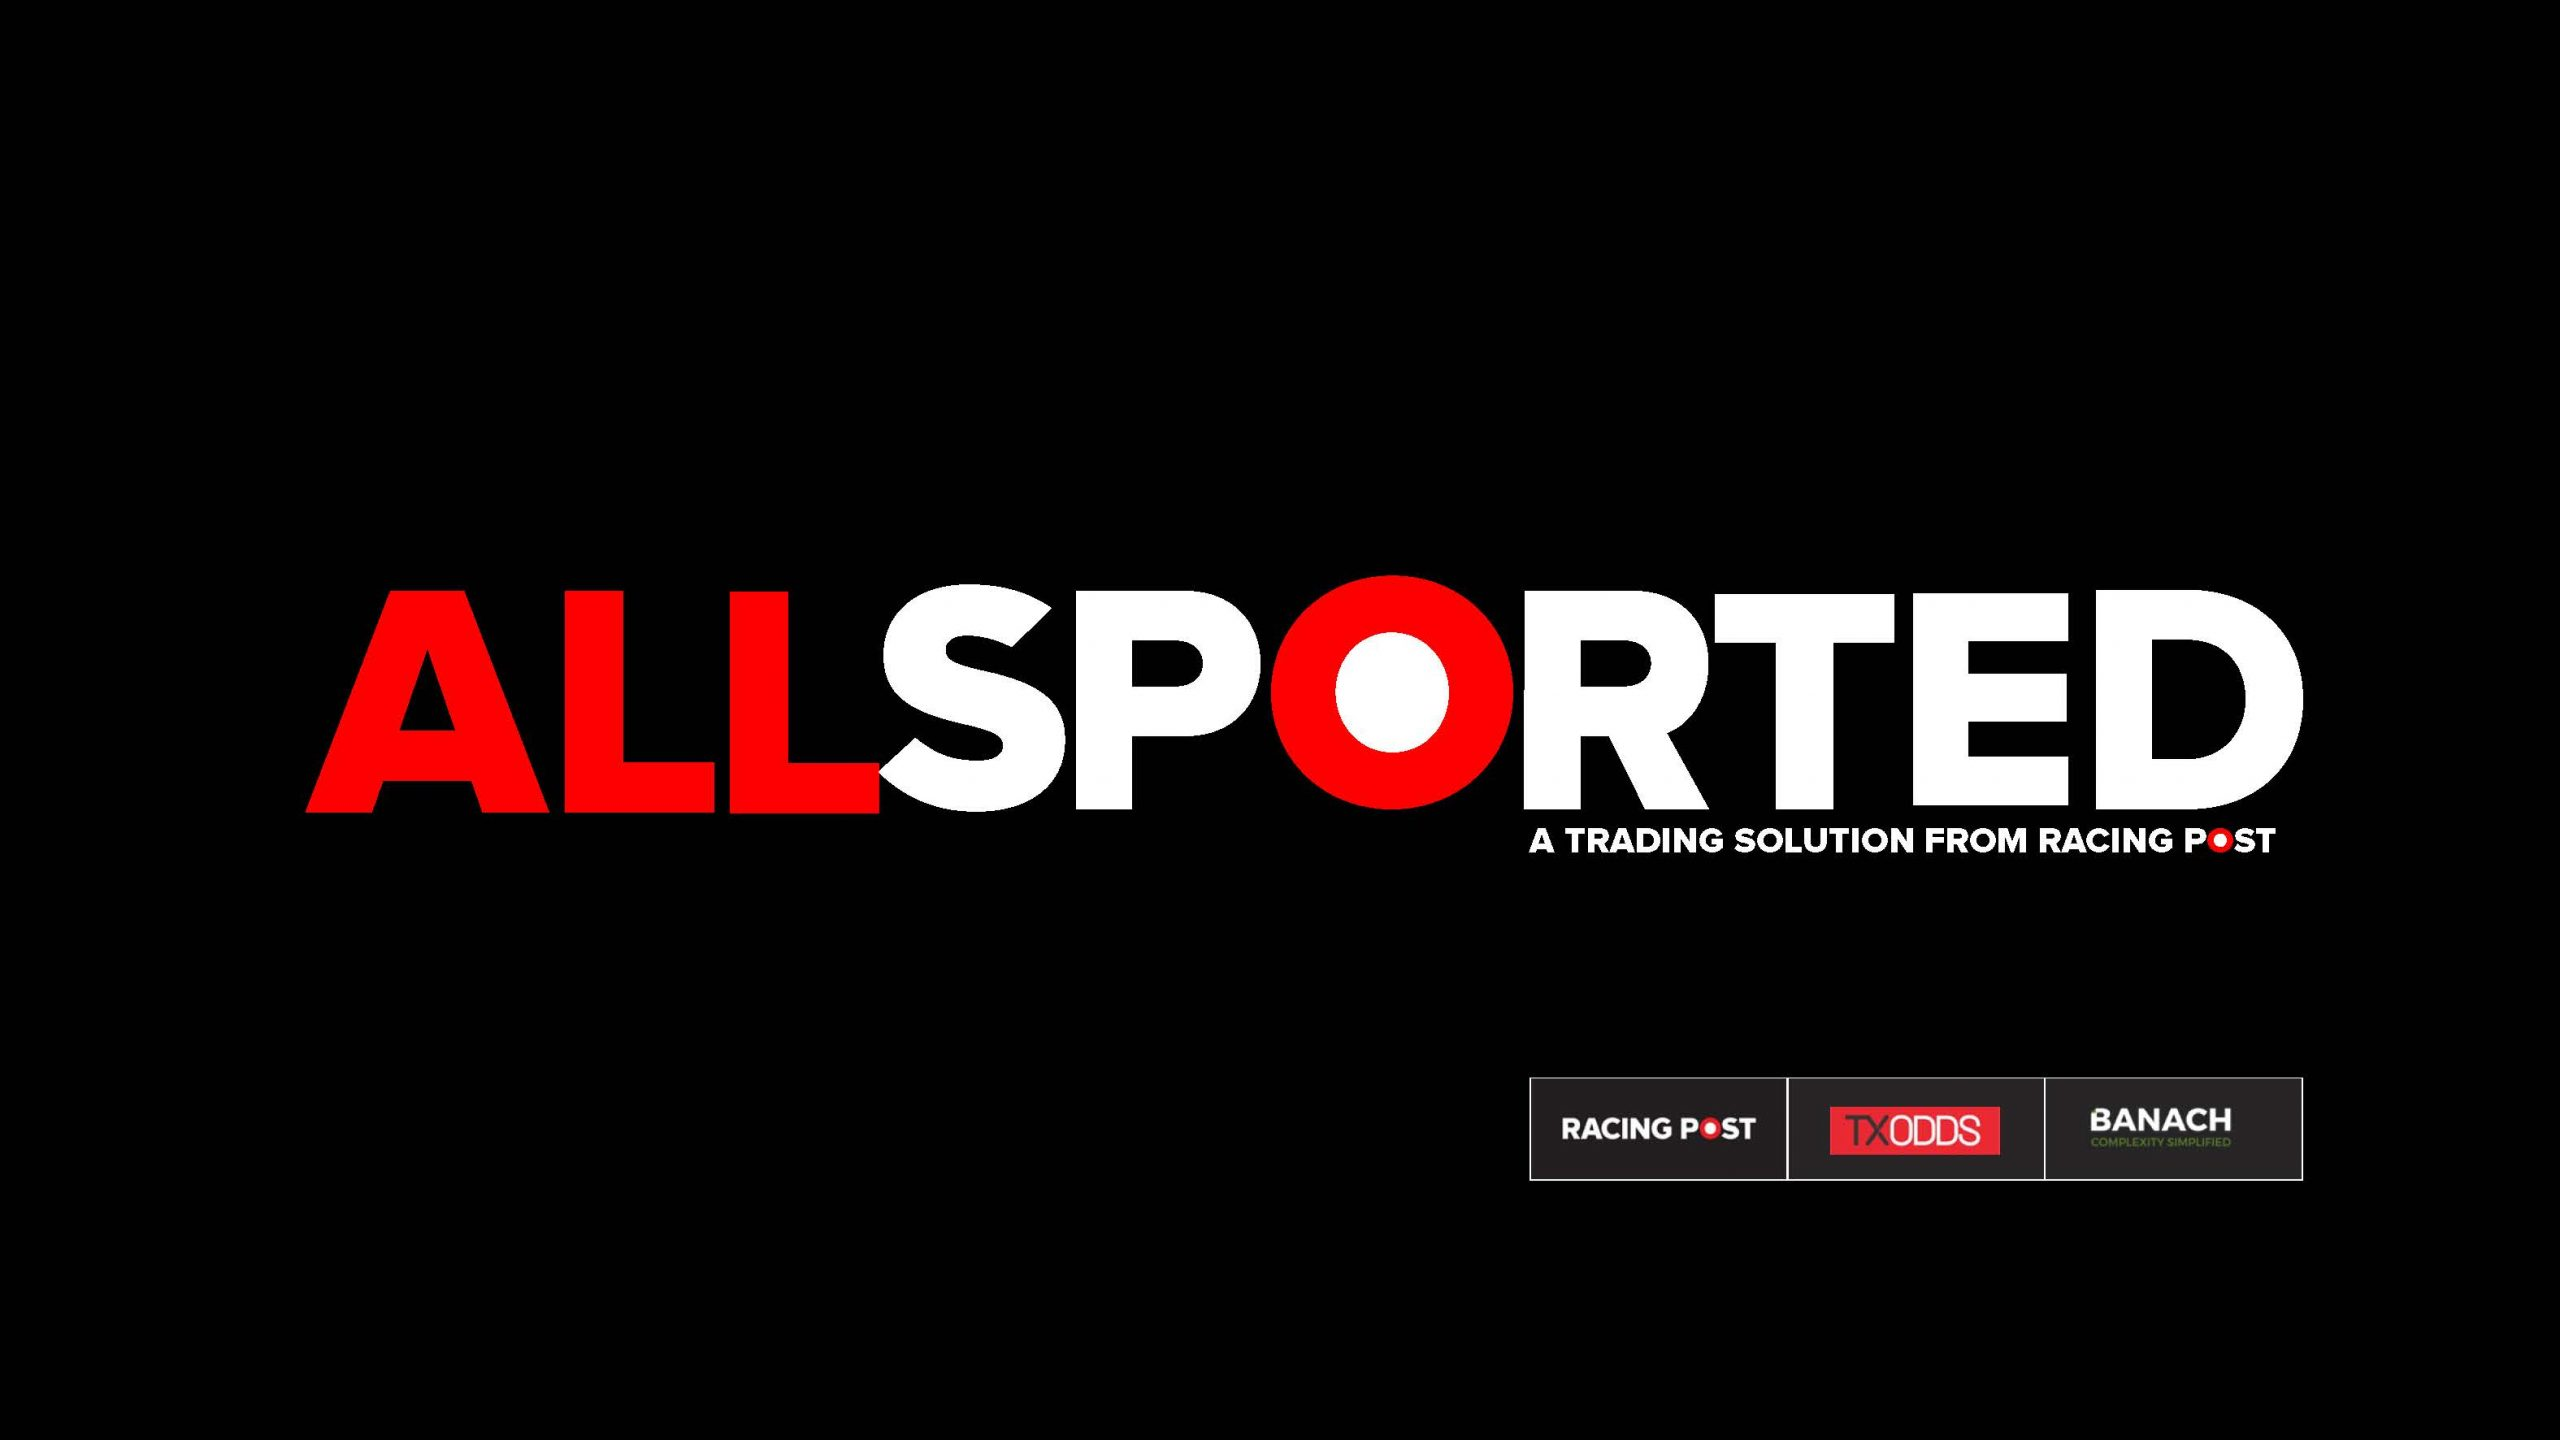 AllSported Introduces Solution To Racing Shortfall